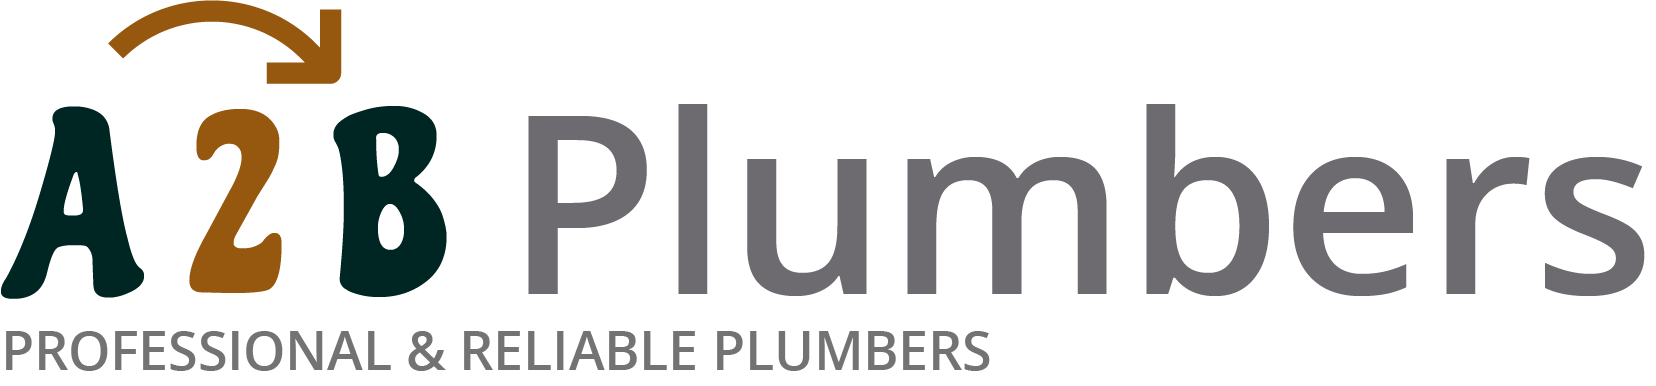 If you need a boiler installed, a radiator repaired or a leaking tap fixed, call us now - we provide services for properties in Nine Elms and the local area.